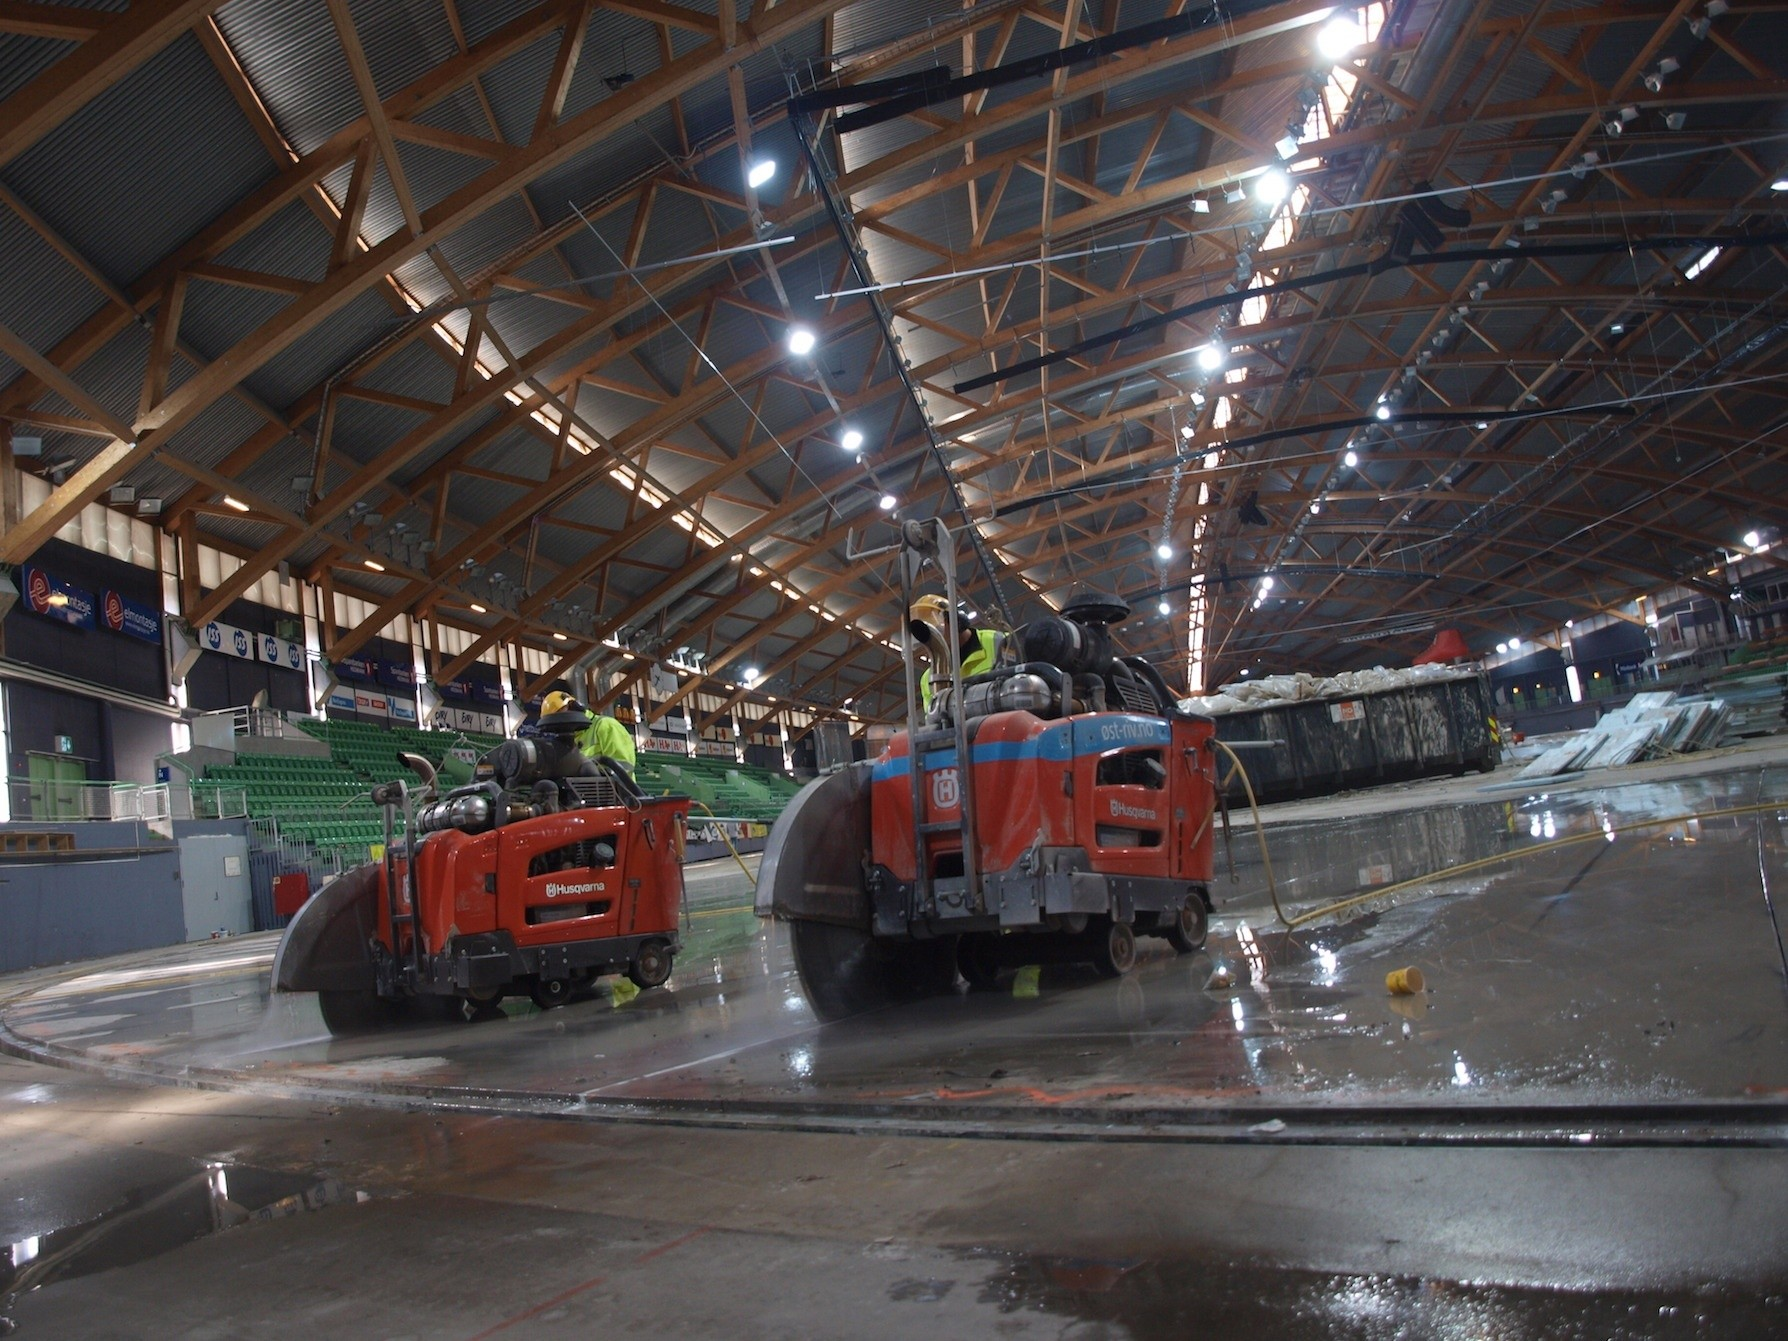 Husqvarna cuts Olympic arena to pieces